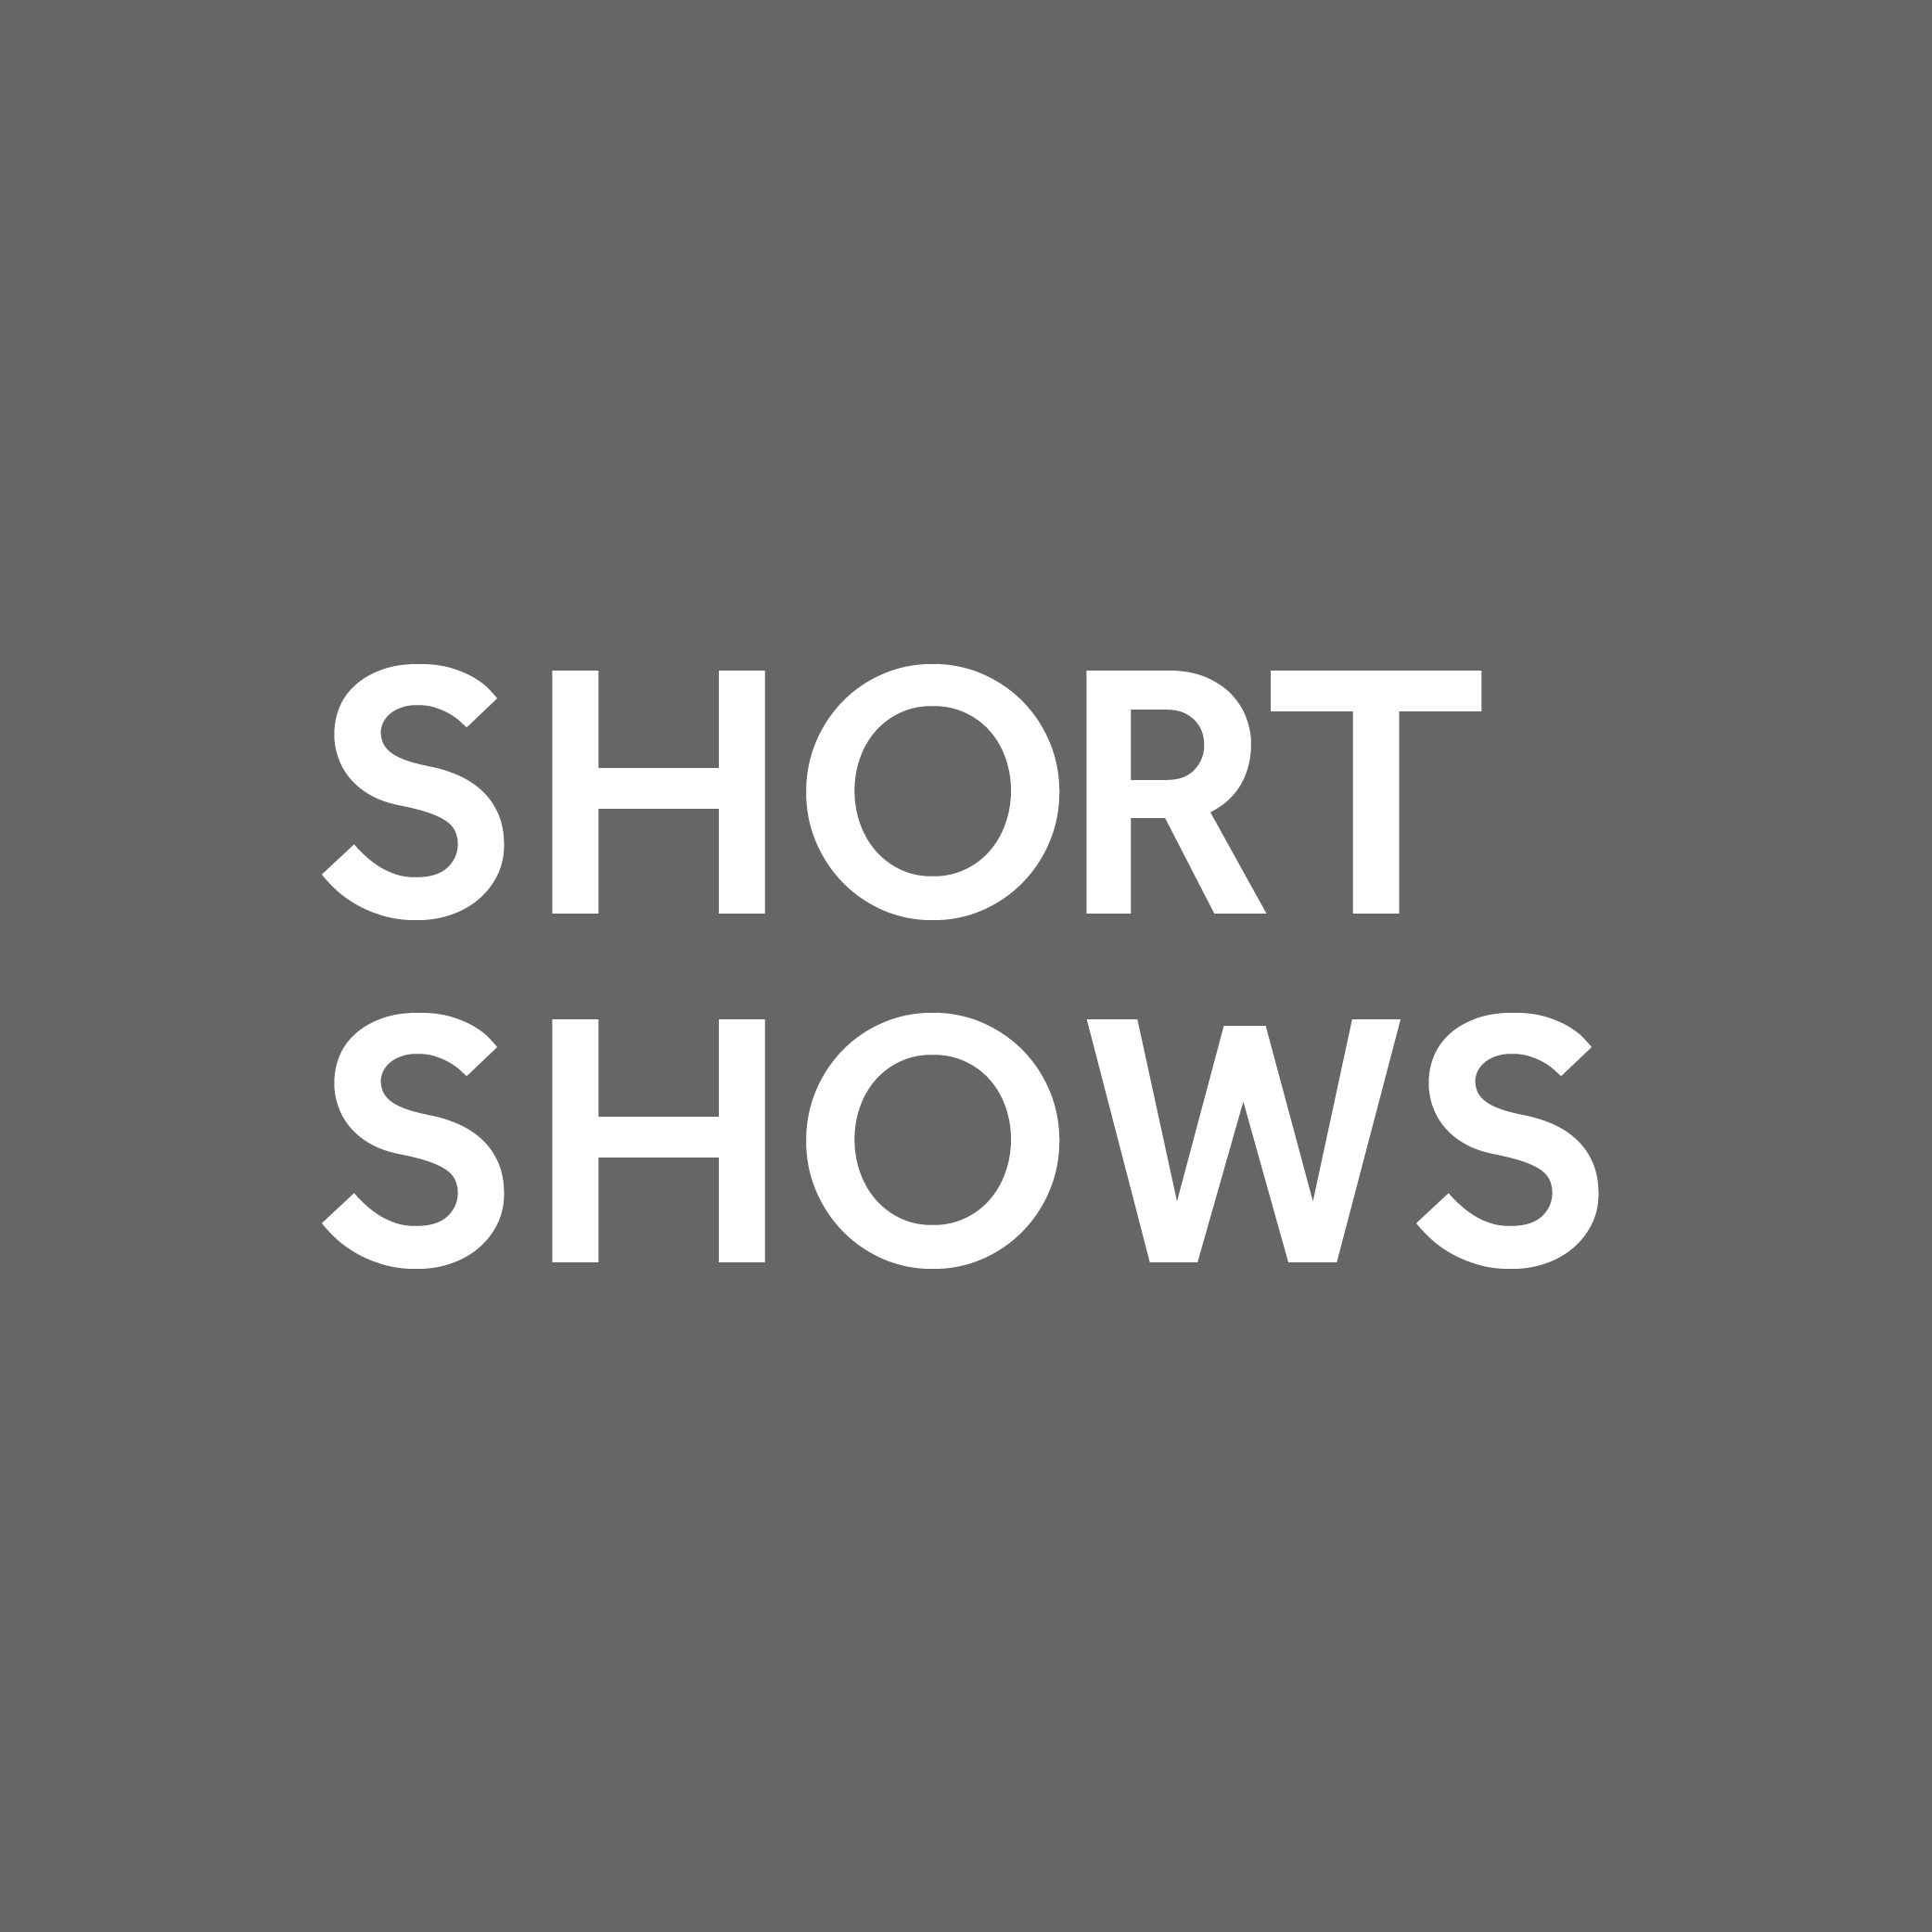 Short Shows